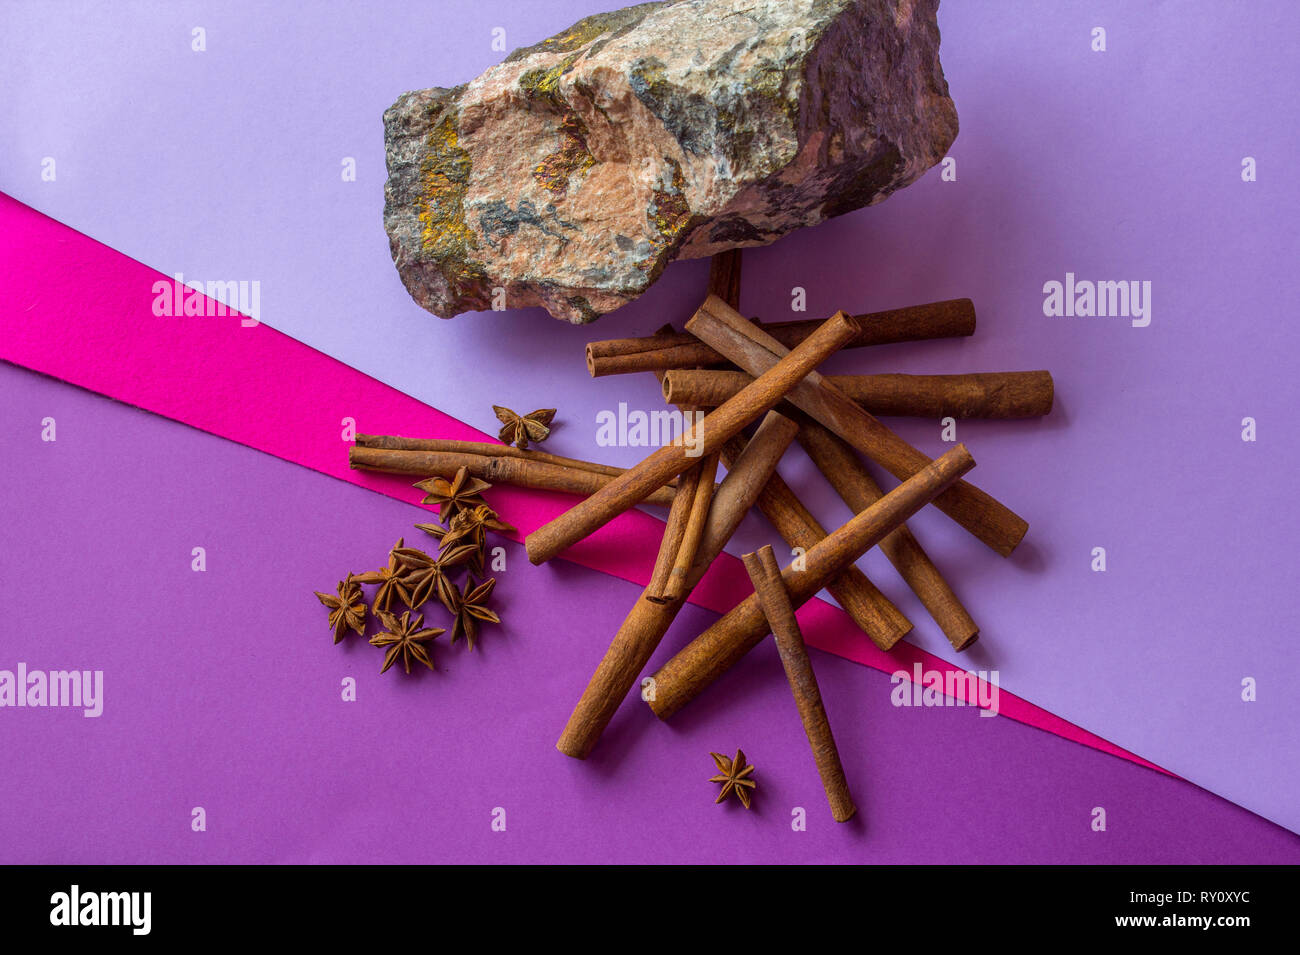 Still life of stone, cinnamon sticks and anise stars lying on coloured background - Stock Image